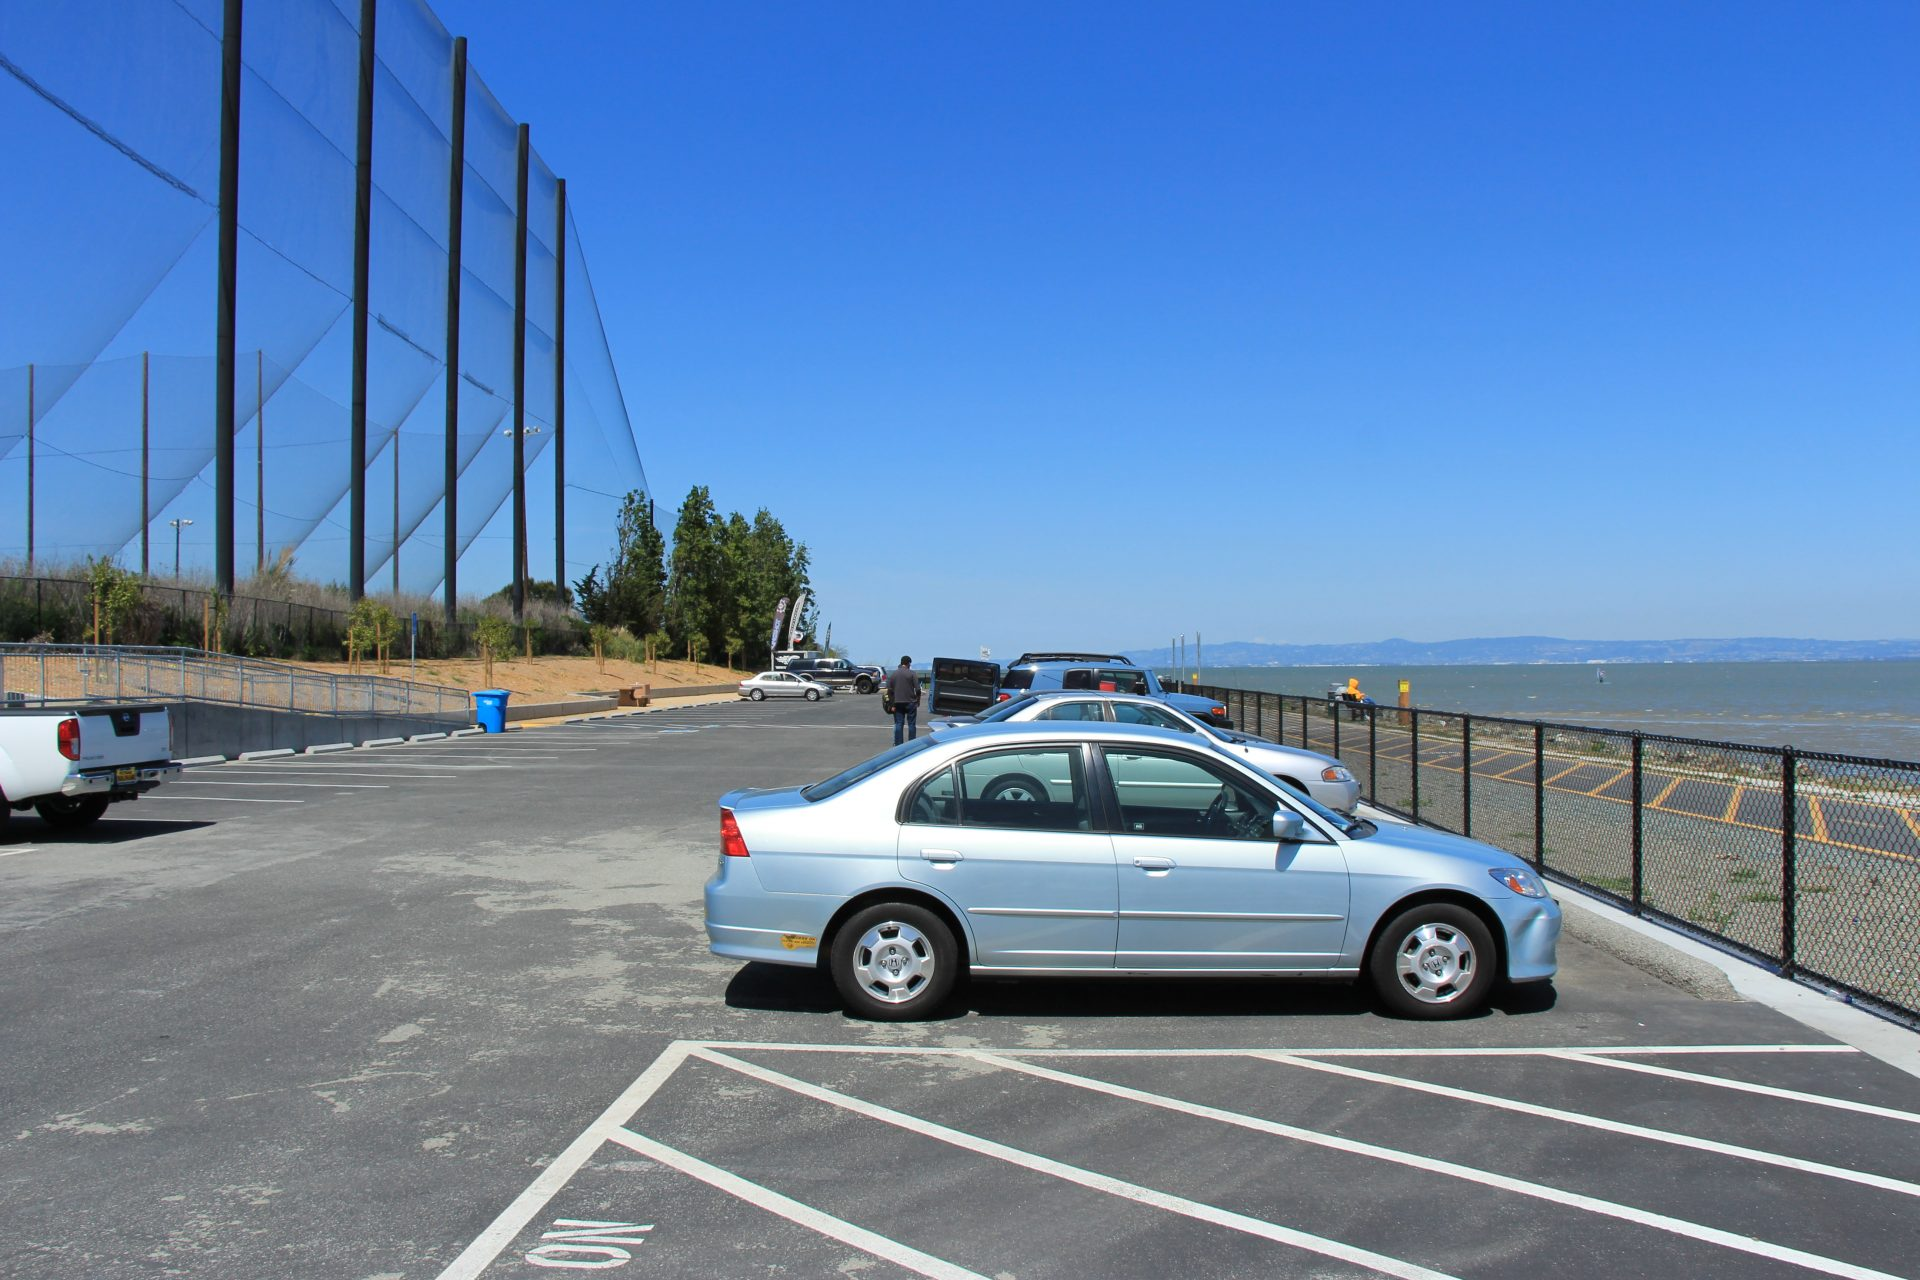 Parking lot with driving range on left and short chainlink fence on right